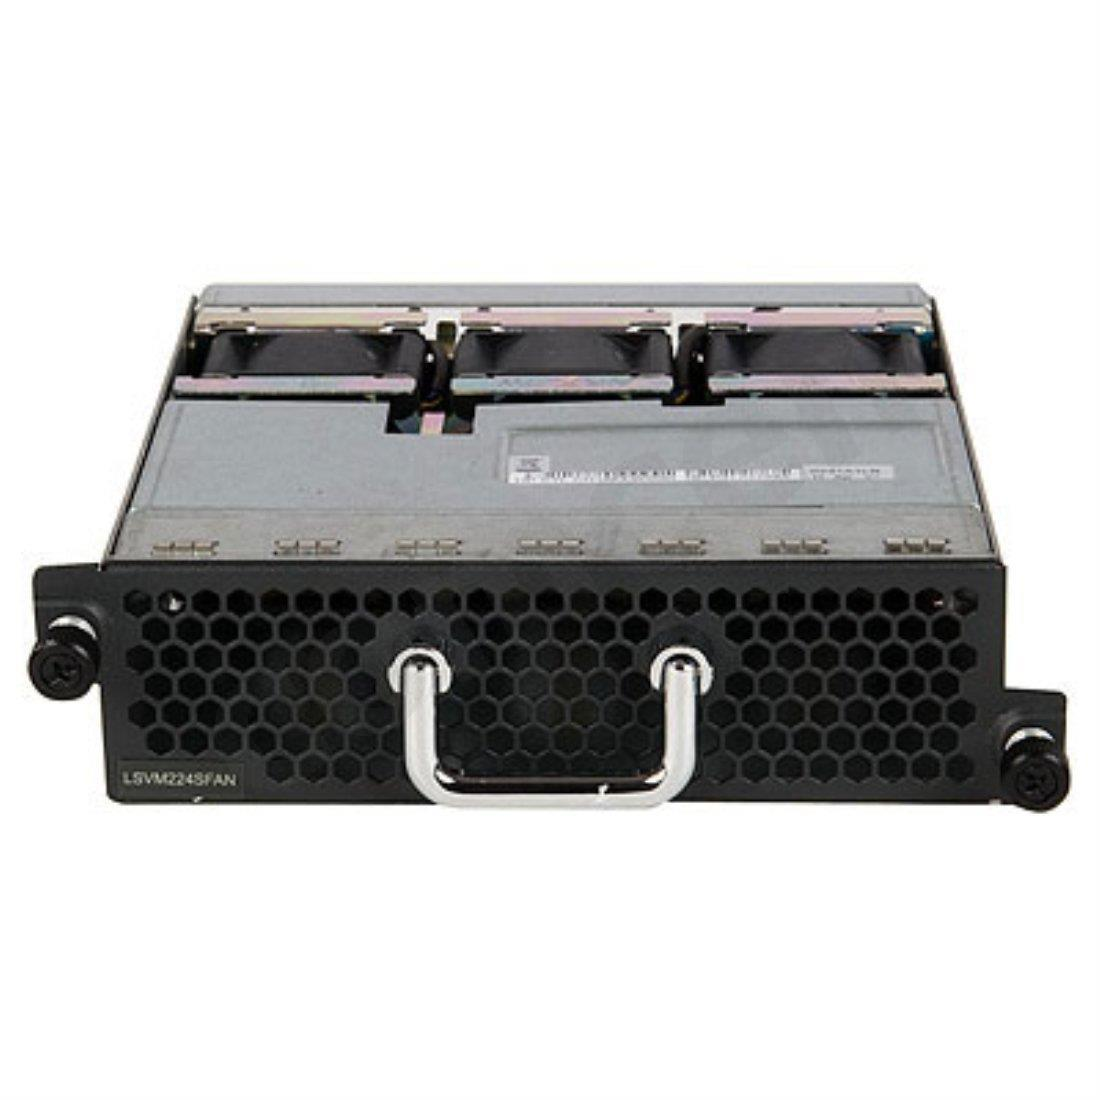 JG553A I HPE X712 Back (Power Side) to Front (Port Side) Airflow High  Volume Fan Tray